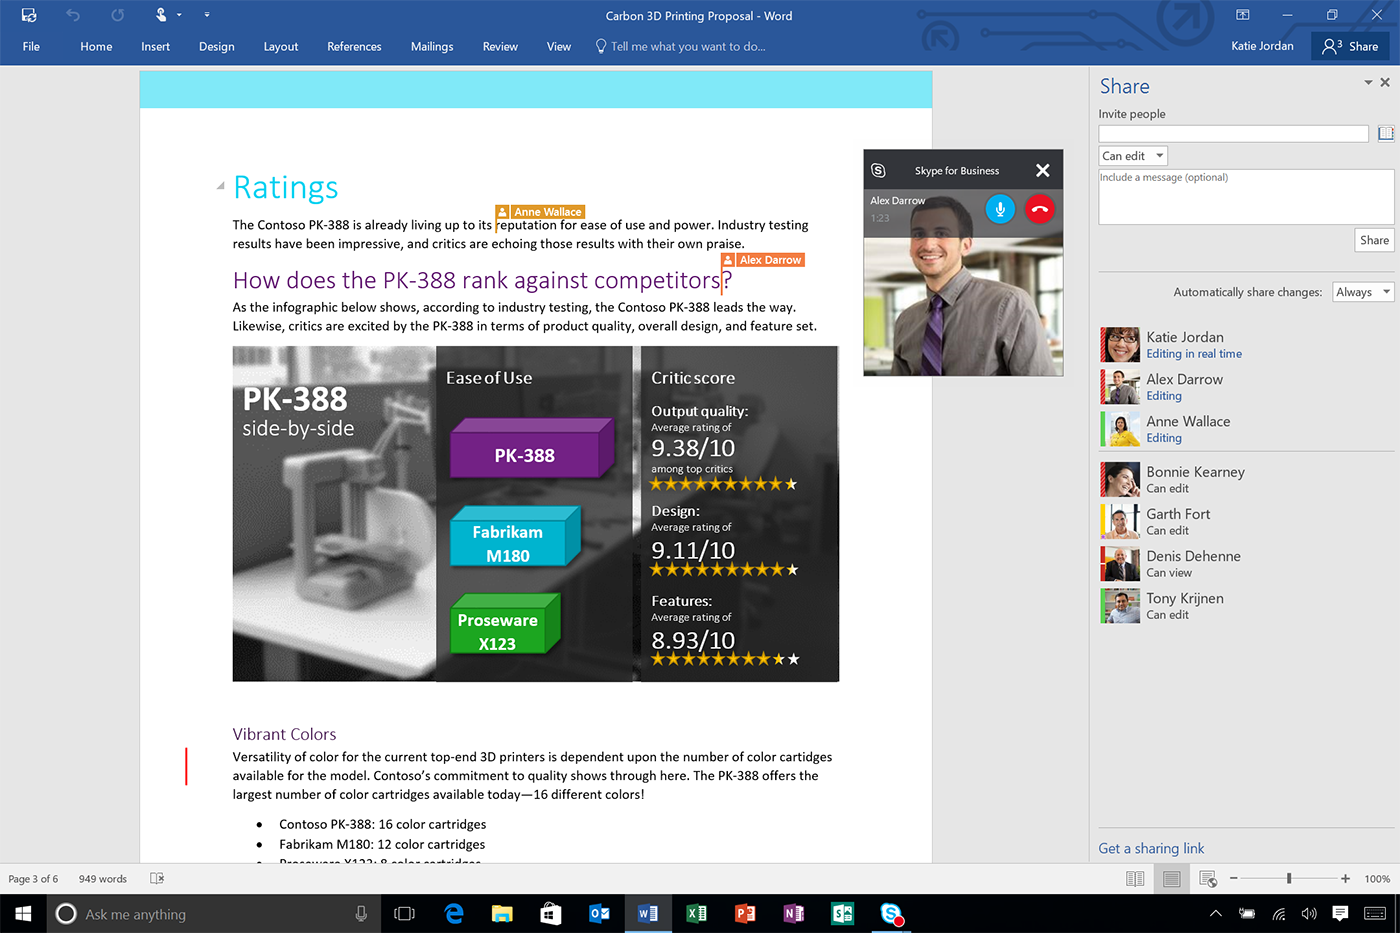 Word 2016 Real Time Typing and Skype for Business Video